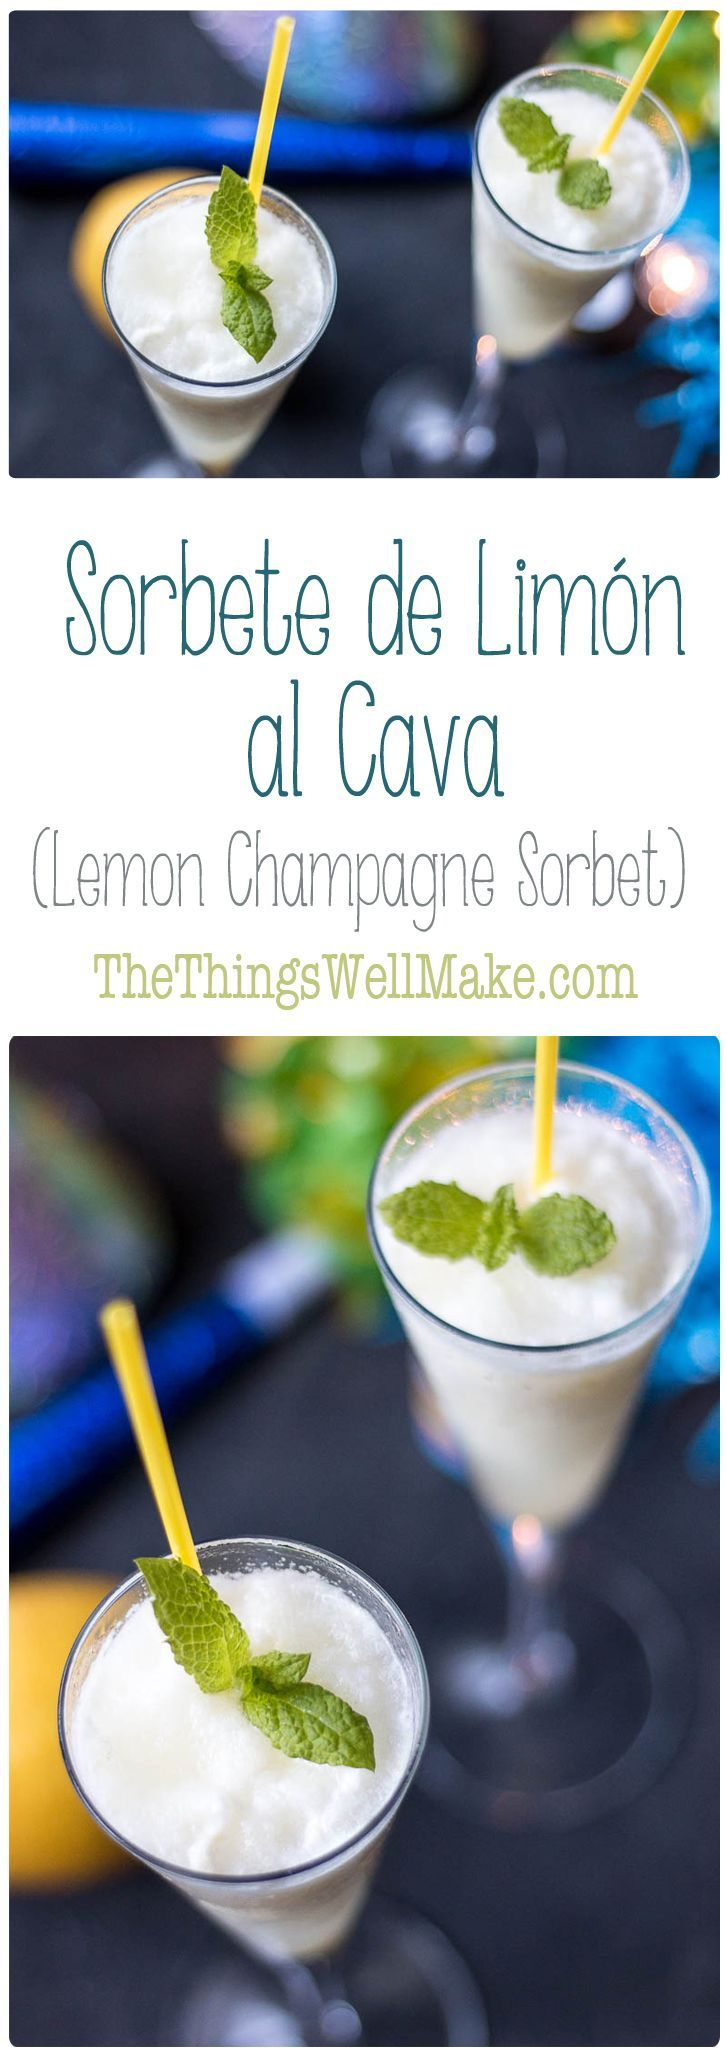 5928 best the real creative life images on pinterest - Sorbete limon al cava ...